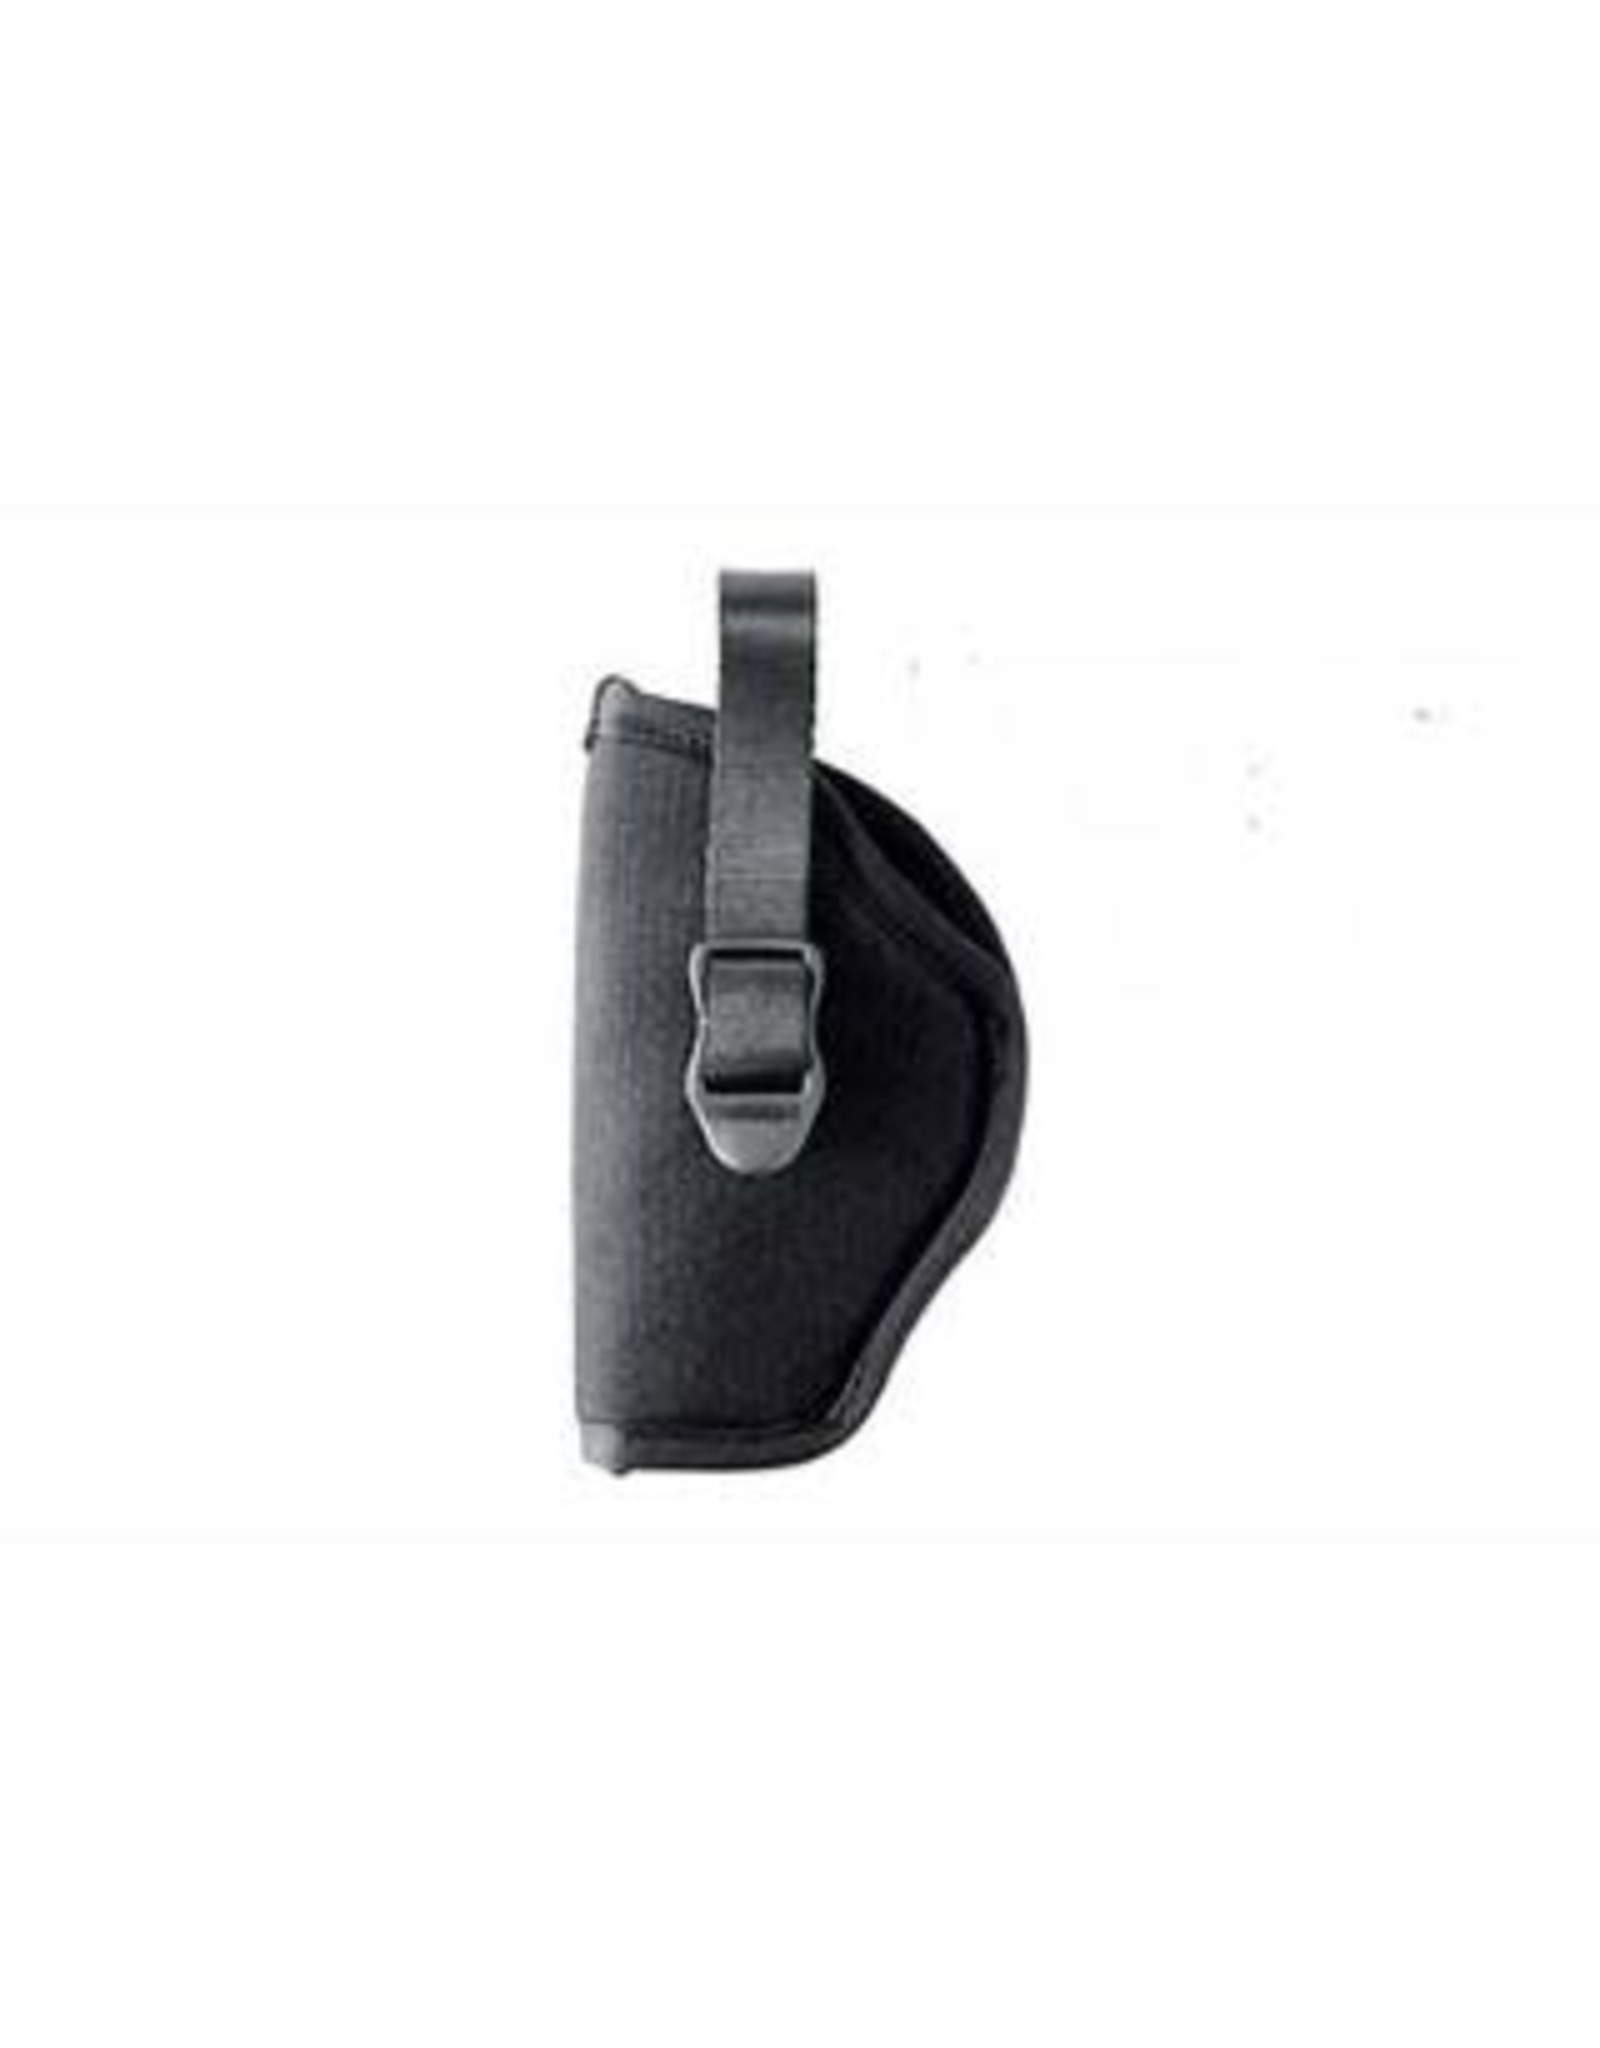 BLACK HAWK PRODUCTS Blackhawk Holster for Small and Med Double Action Revolver - LEFT HAND